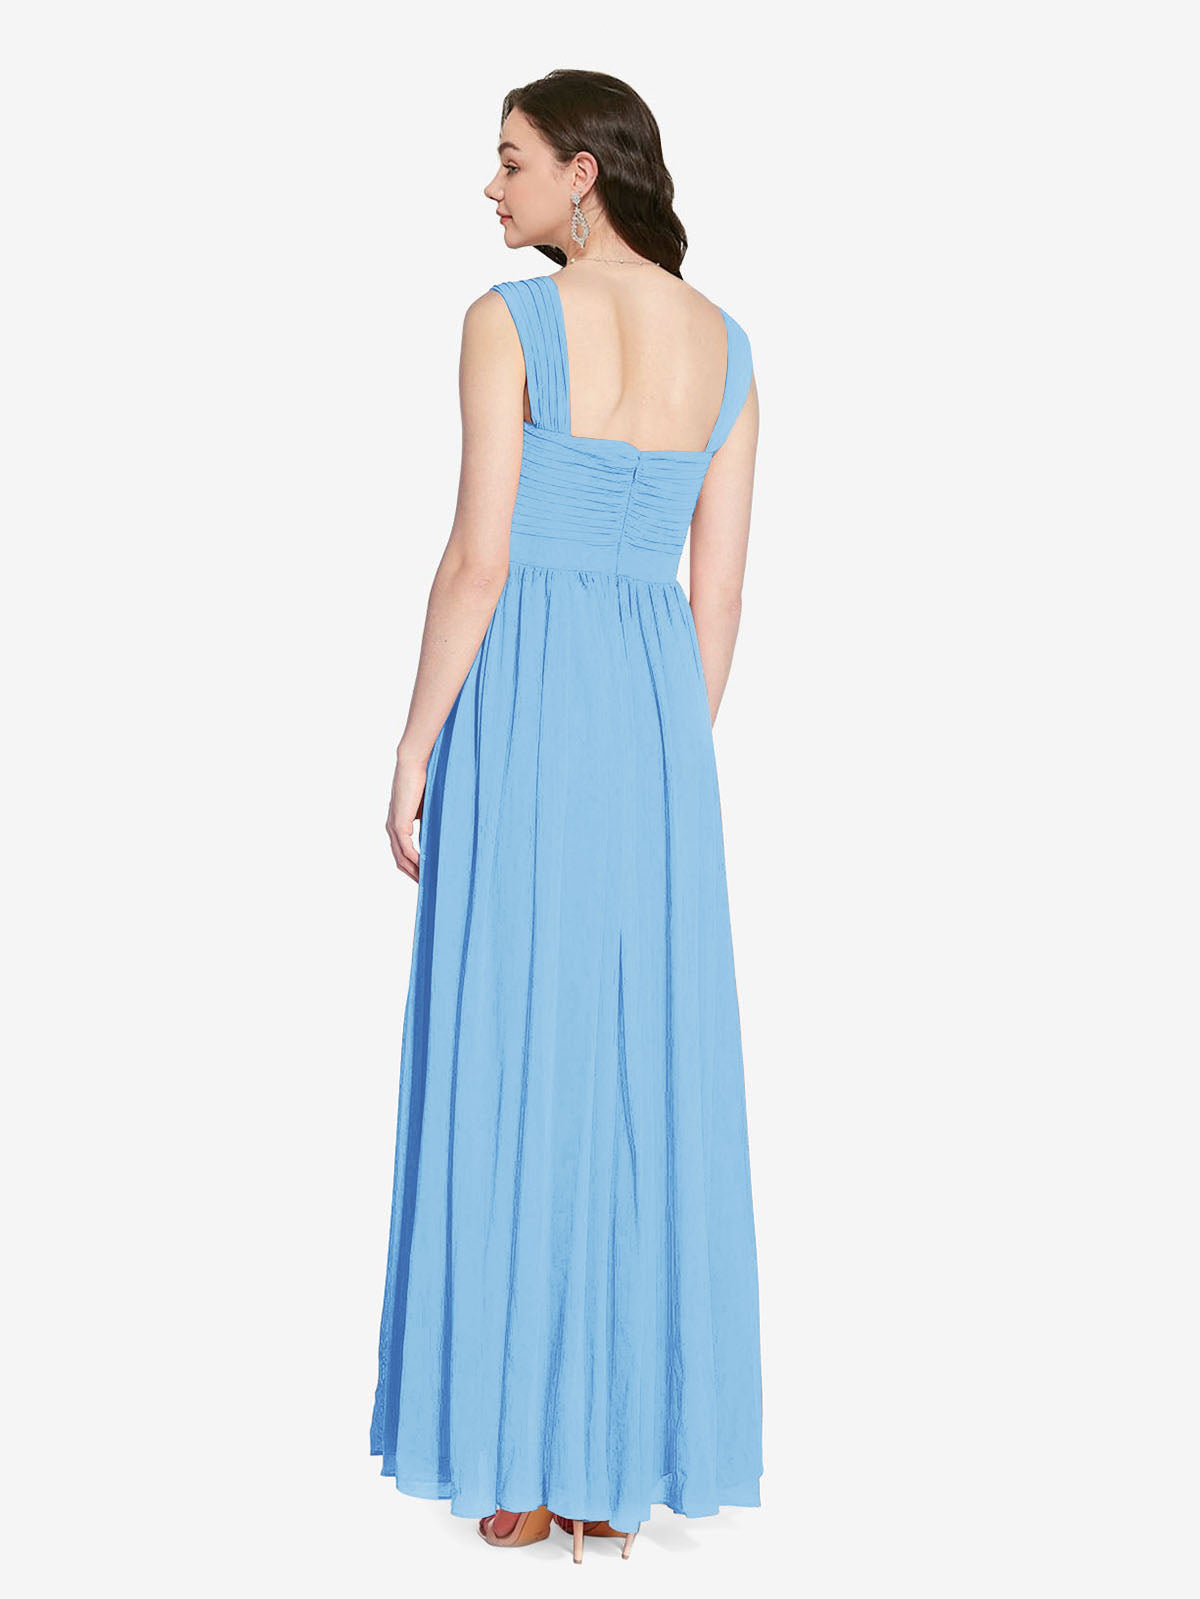 Long A-Line Square Sleeveless Periwinkle Chiffon Bridesmaid Dress Aldridge